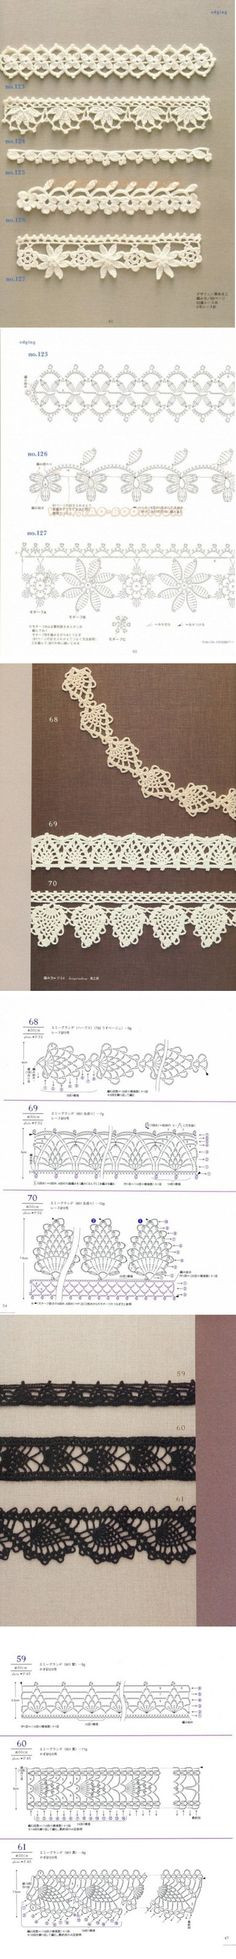 Ideas For Crochet Edging Patterns Lace Ganchillo Crochet Boarders, Crochet Edging Patterns, Crochet Lace Edging, Crochet Diy, Crochet Diagram, Crochet Chart, Thread Crochet, Filet Crochet, Love Crochet